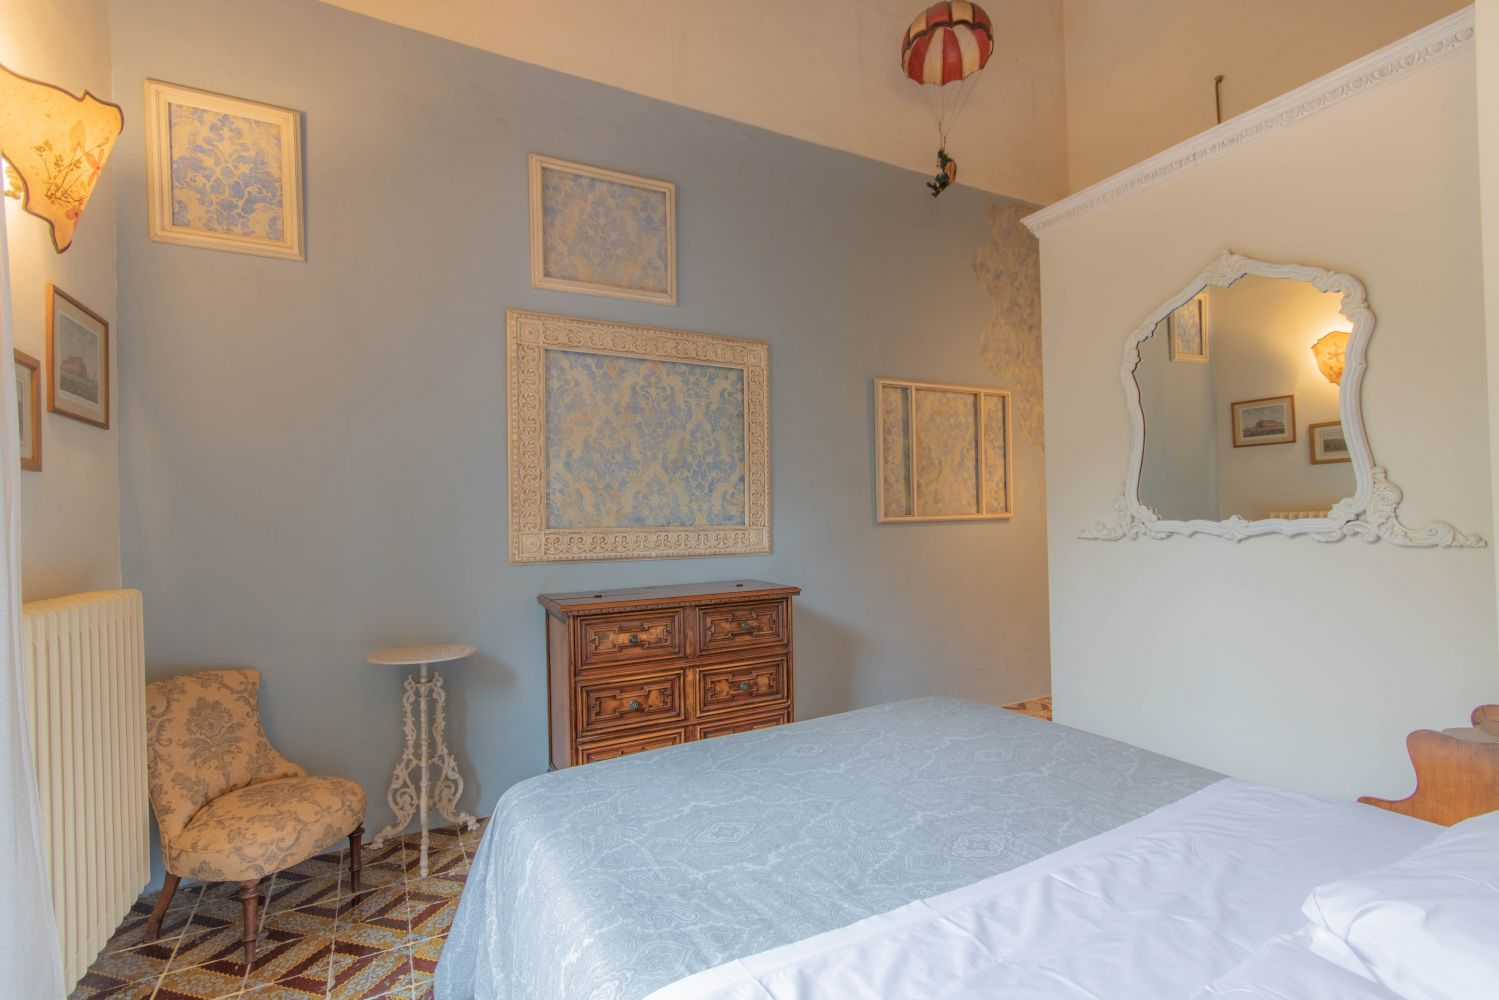 Bed Breakfast Accommodation Florence Historic Center Gallery